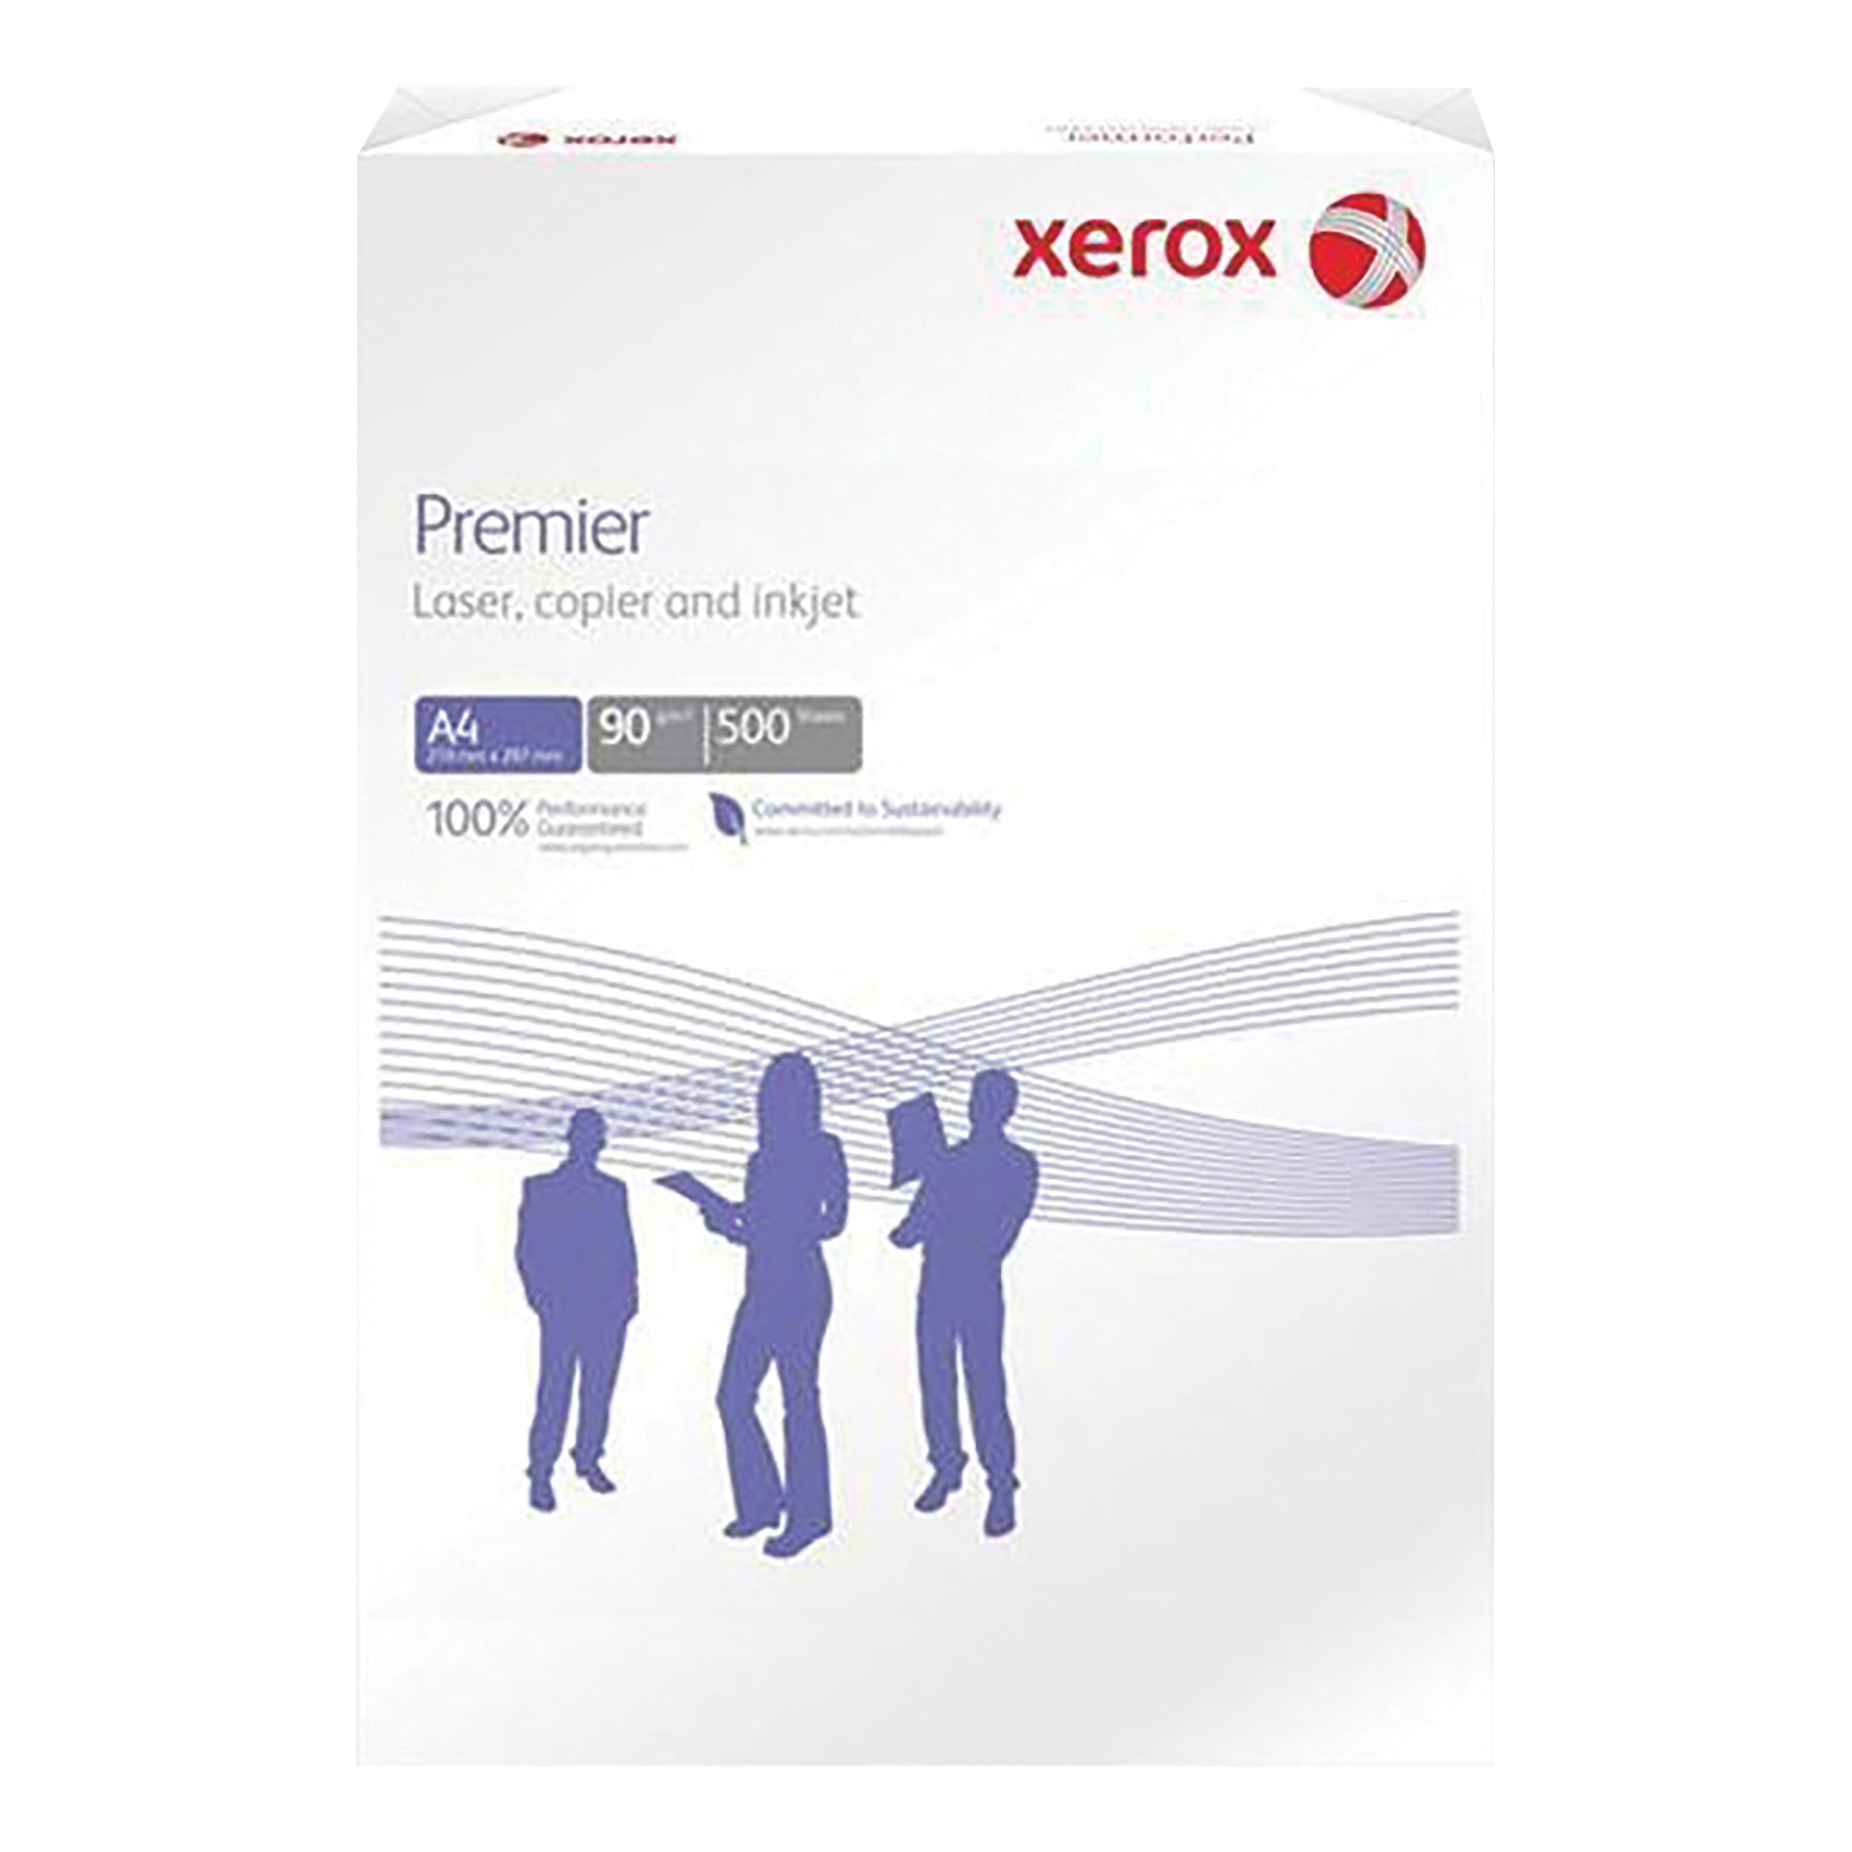 Xerox Premier Copier Paper Multifunctional Ream-Wrapped 90gsm A4 White Ref 62324 [500 Sheets]